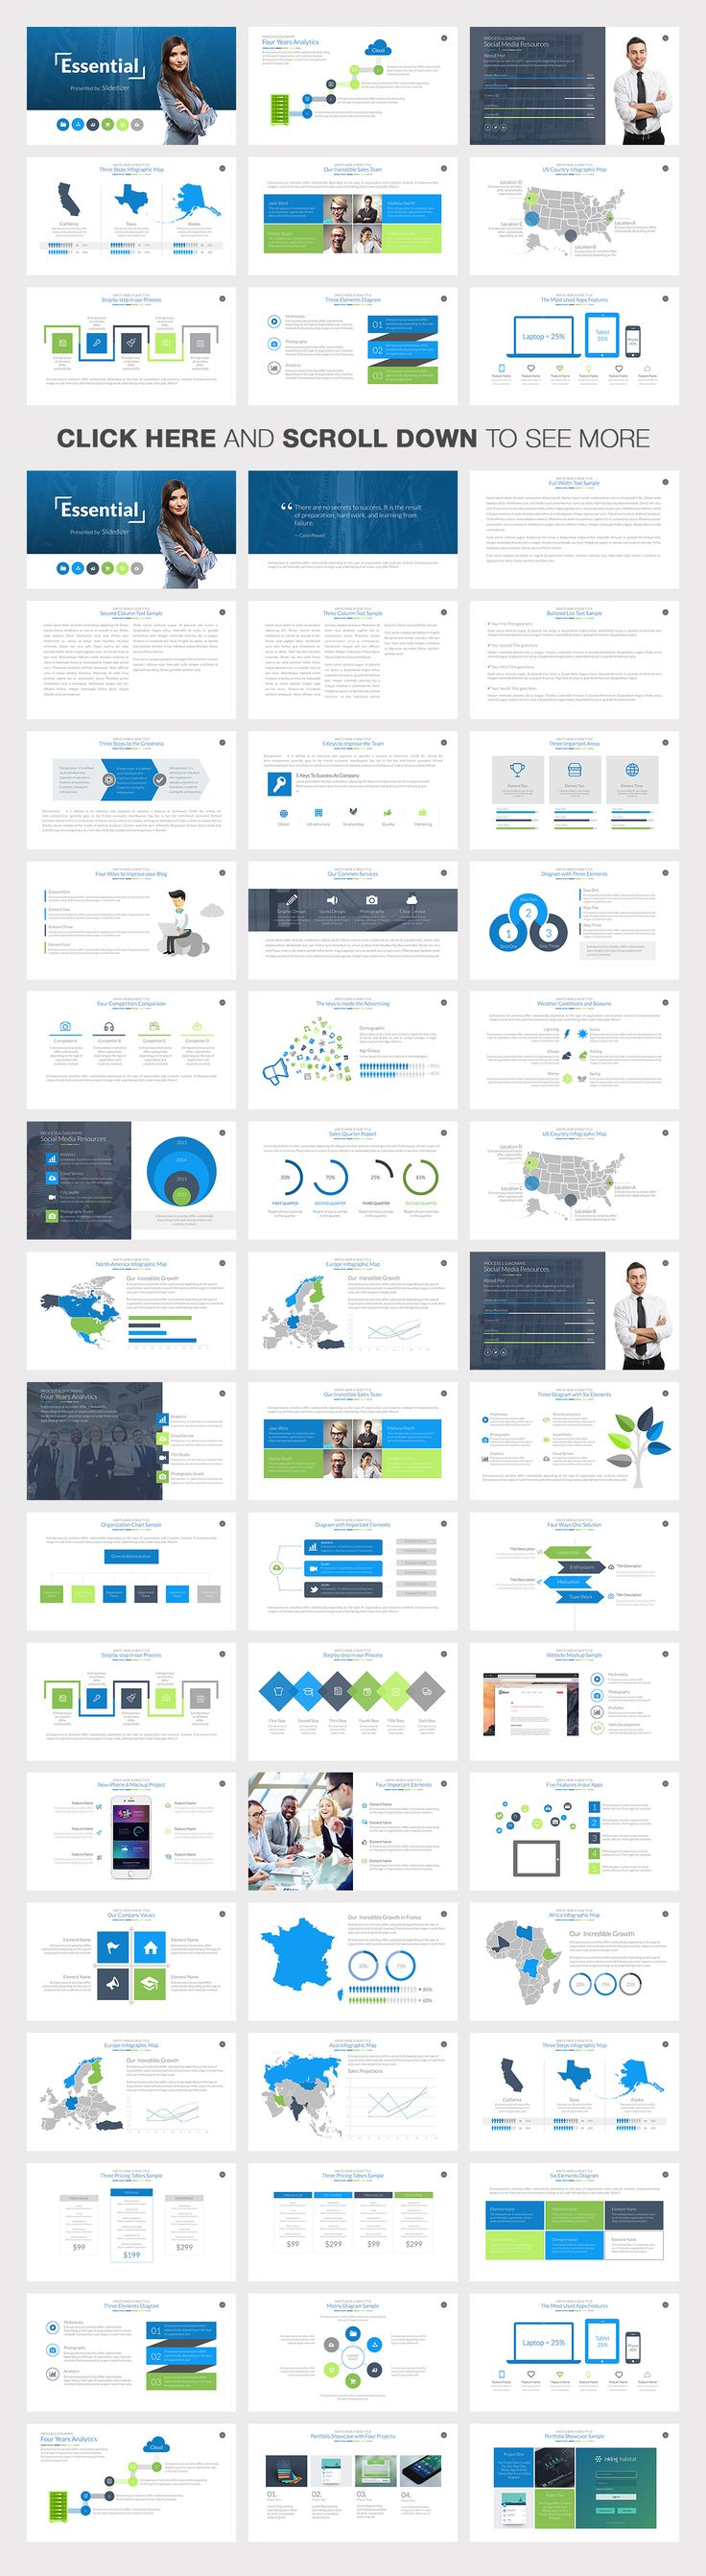 104 best design powerpoint images on pinterest ppt design